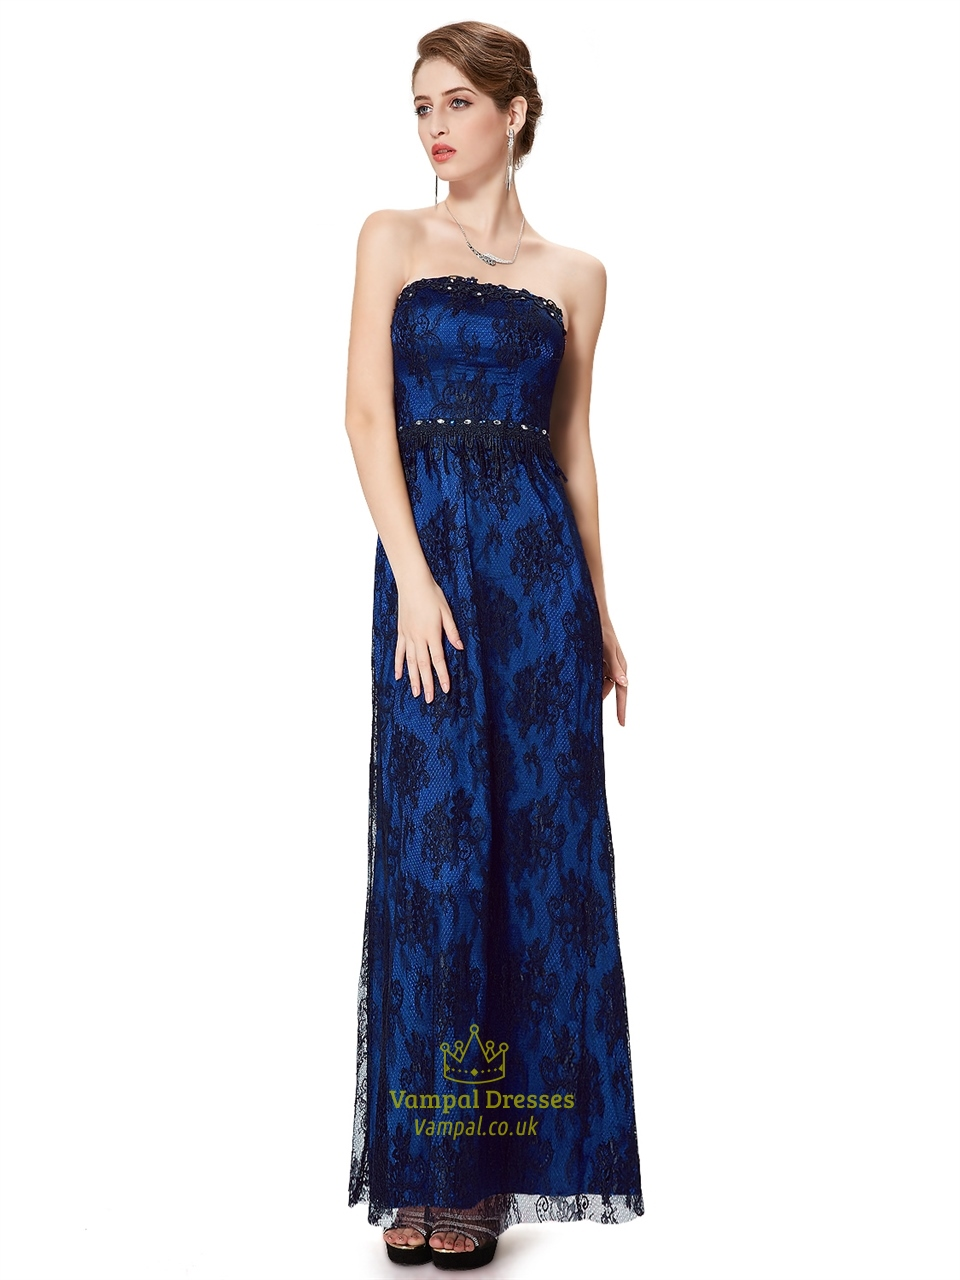 Royal Blue And Black Strapless Lace Prom Dress With Beaded